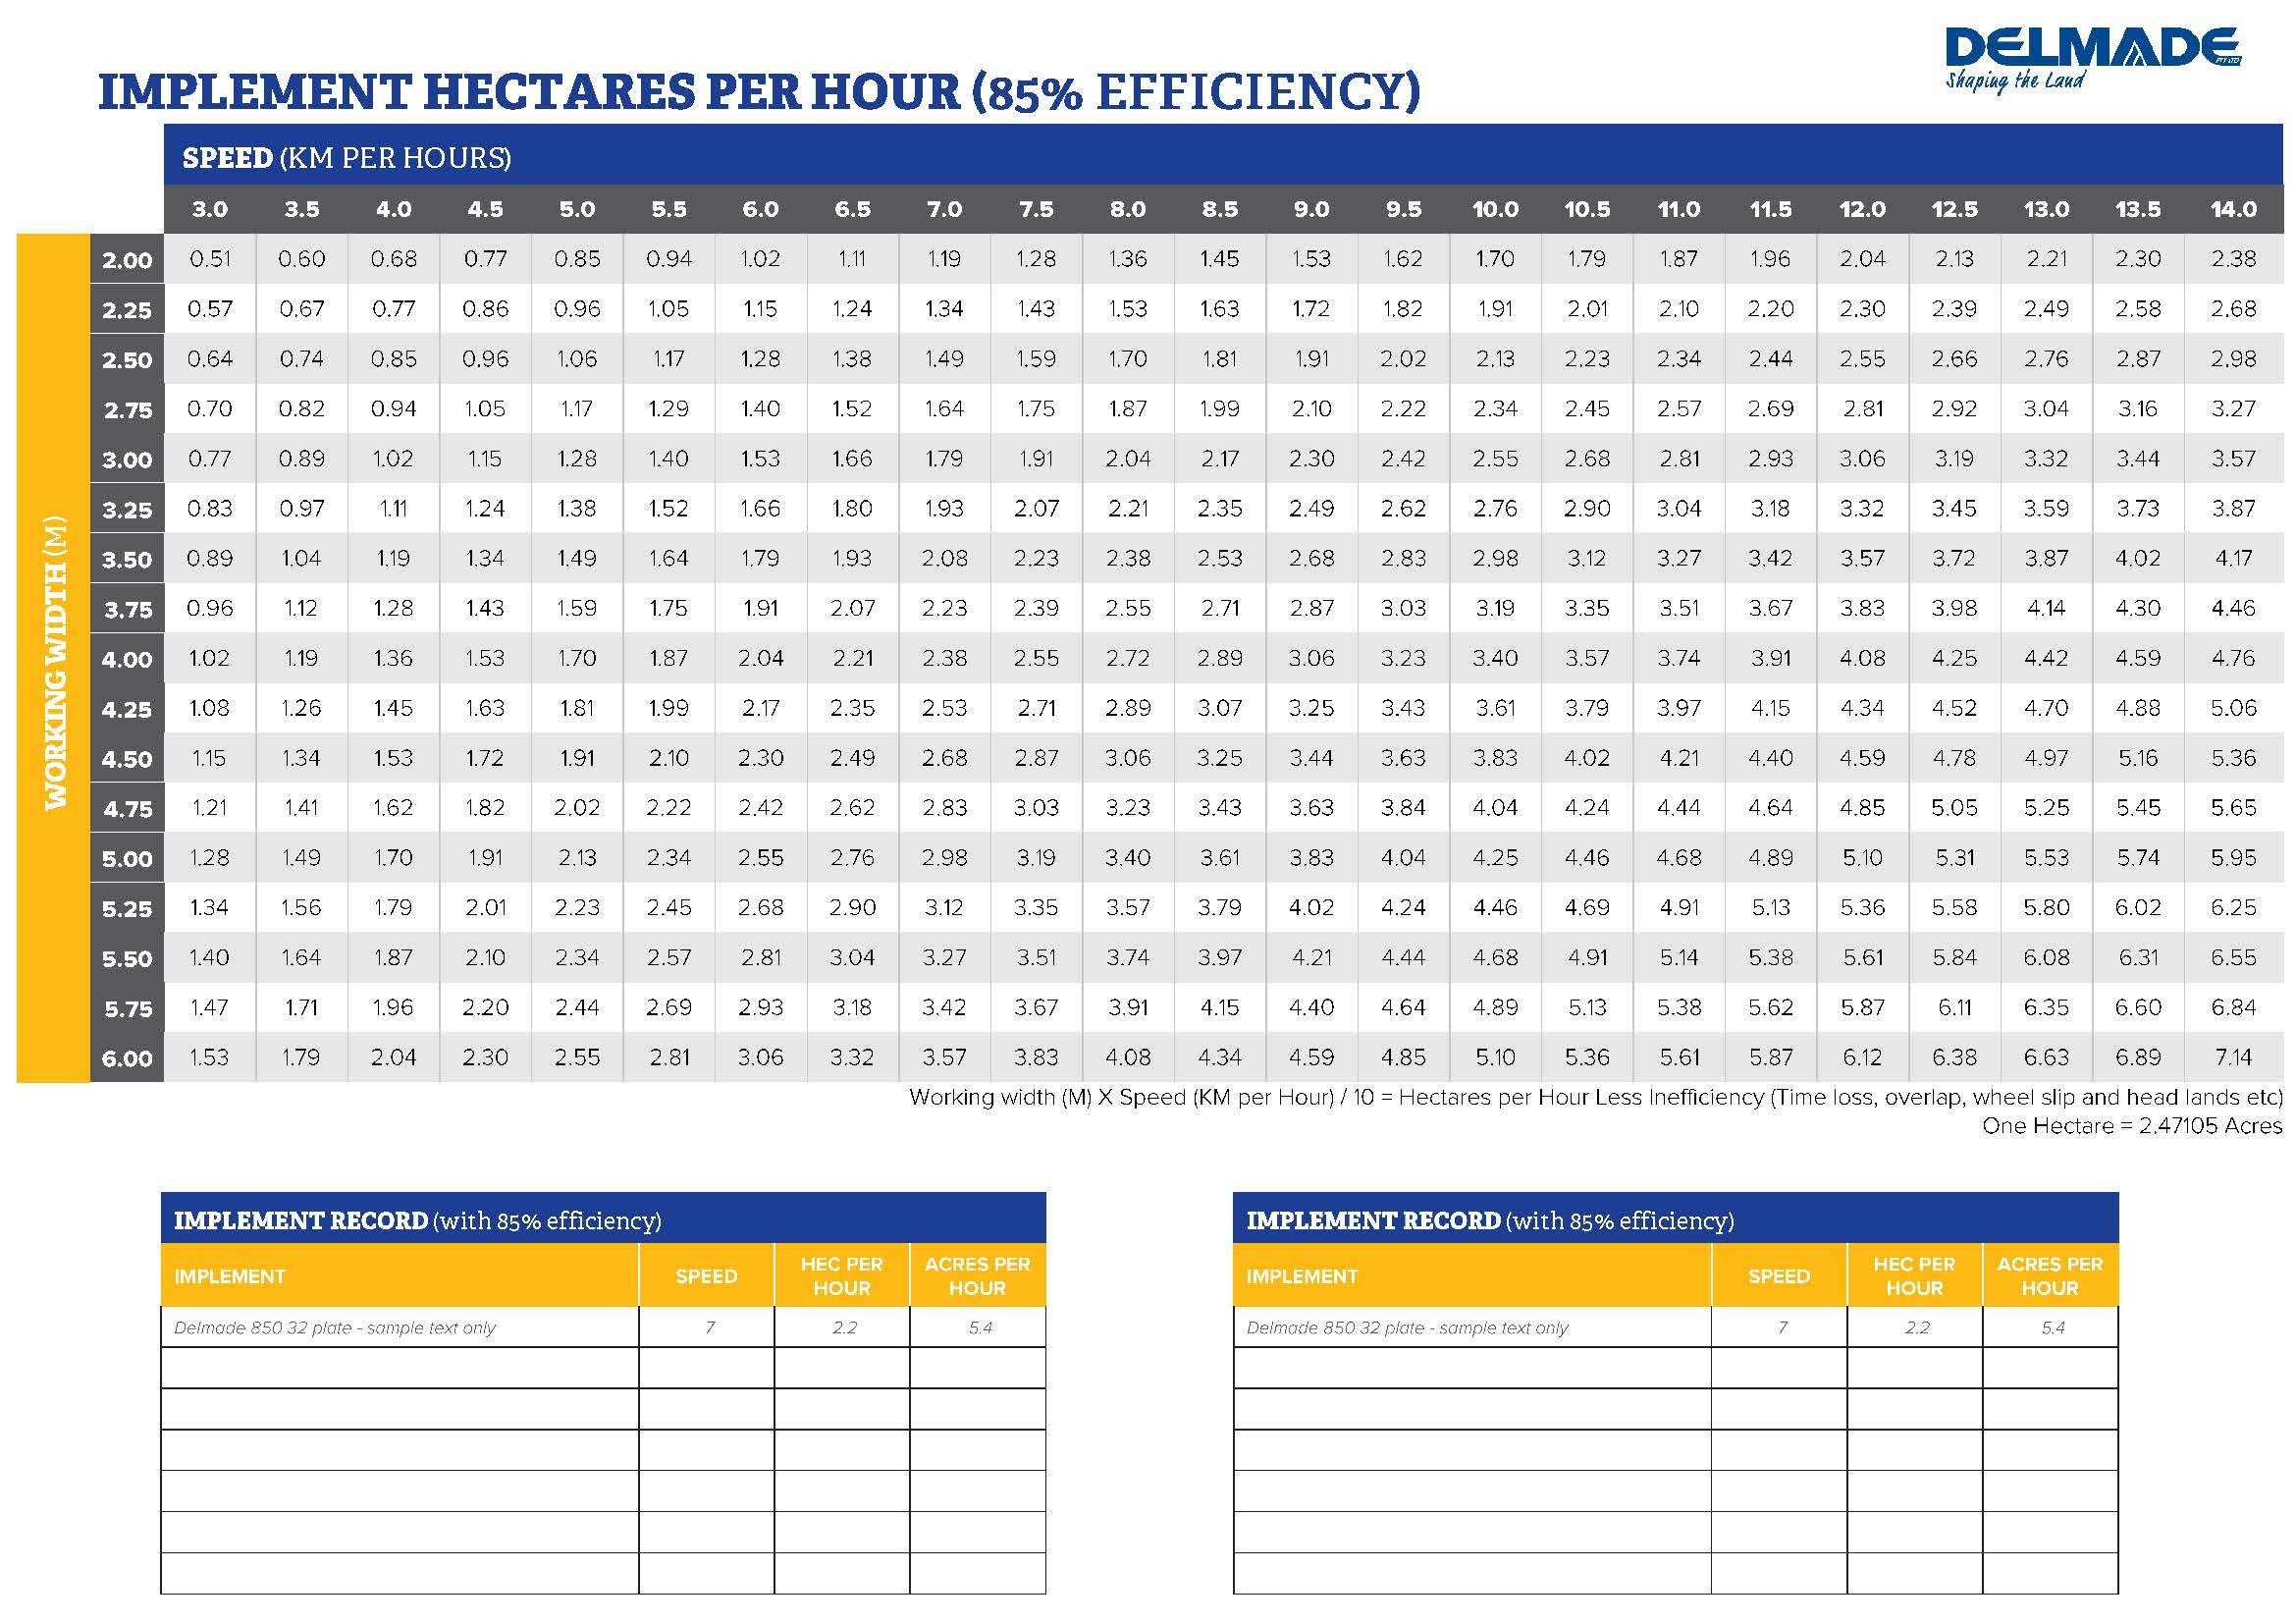 Delmade Free Download Implement Hectares per Hour Calculation Chart